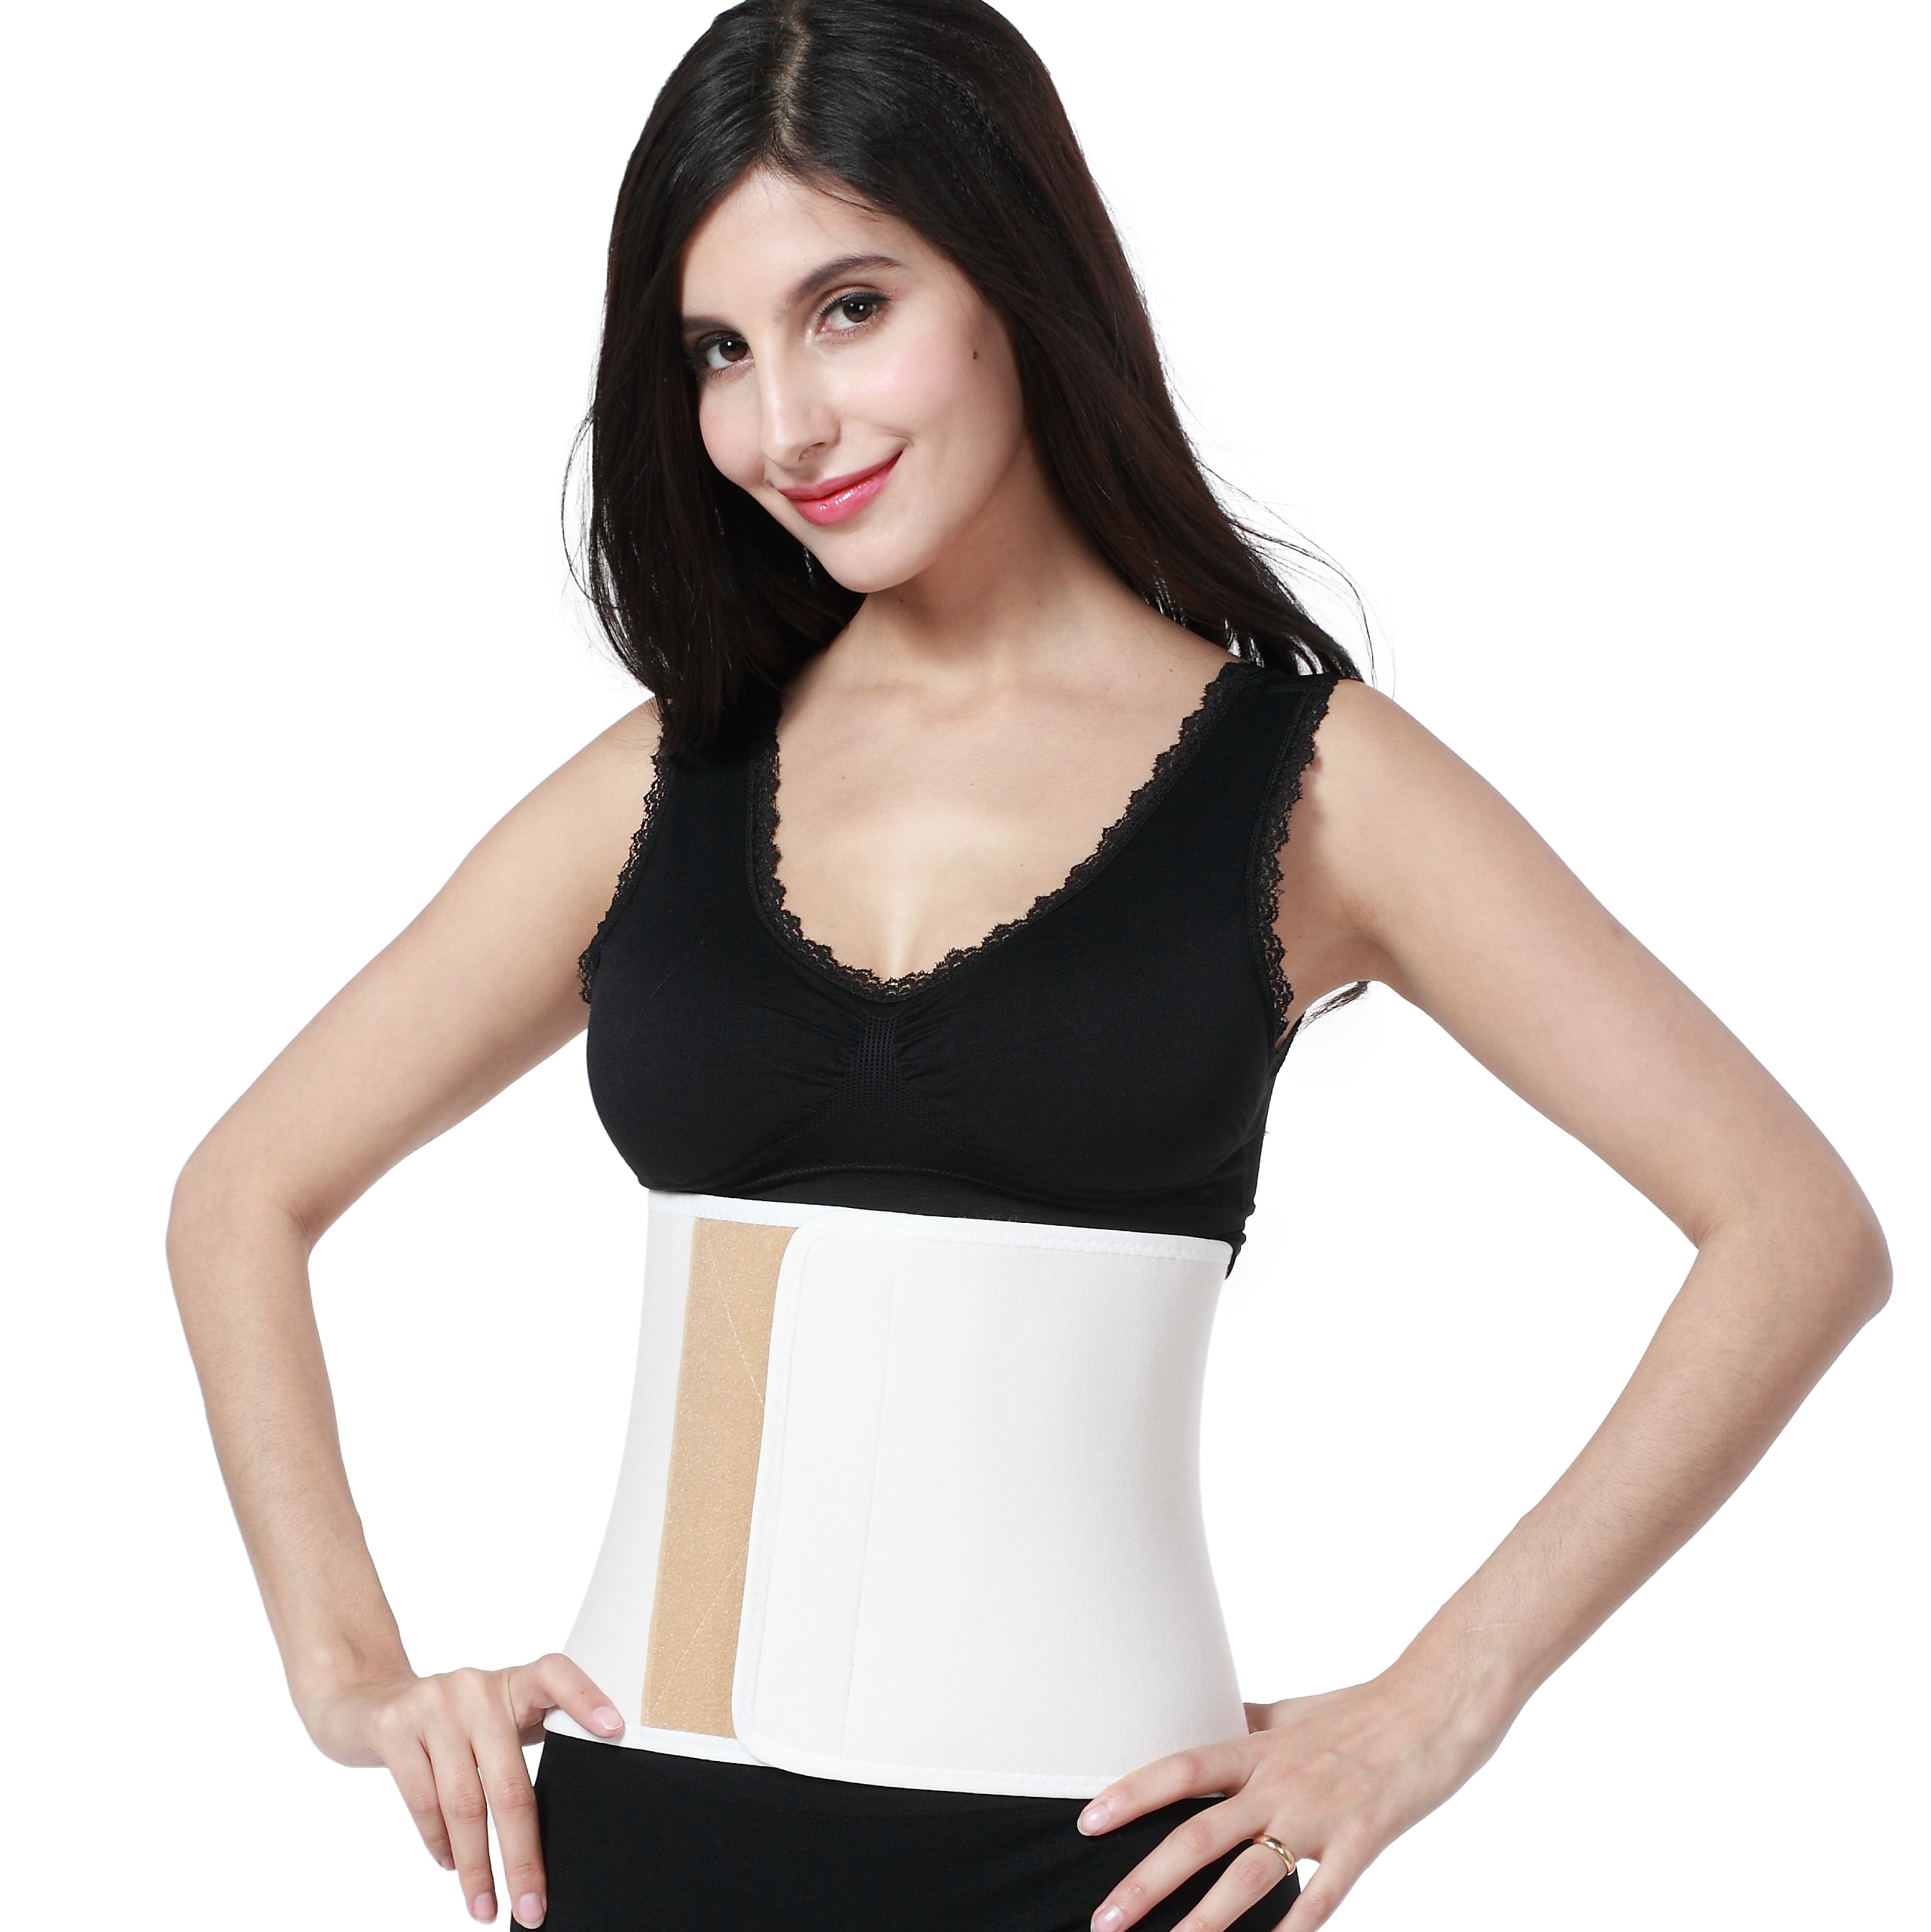 Post Partum Support / Pregnancy / Maternity Trimmer Belt / Corset - Waist / Tummy / Belly Band & Back Support, Elastic - NEOtech Care ( TM ) Brand - Cream Color - Size M